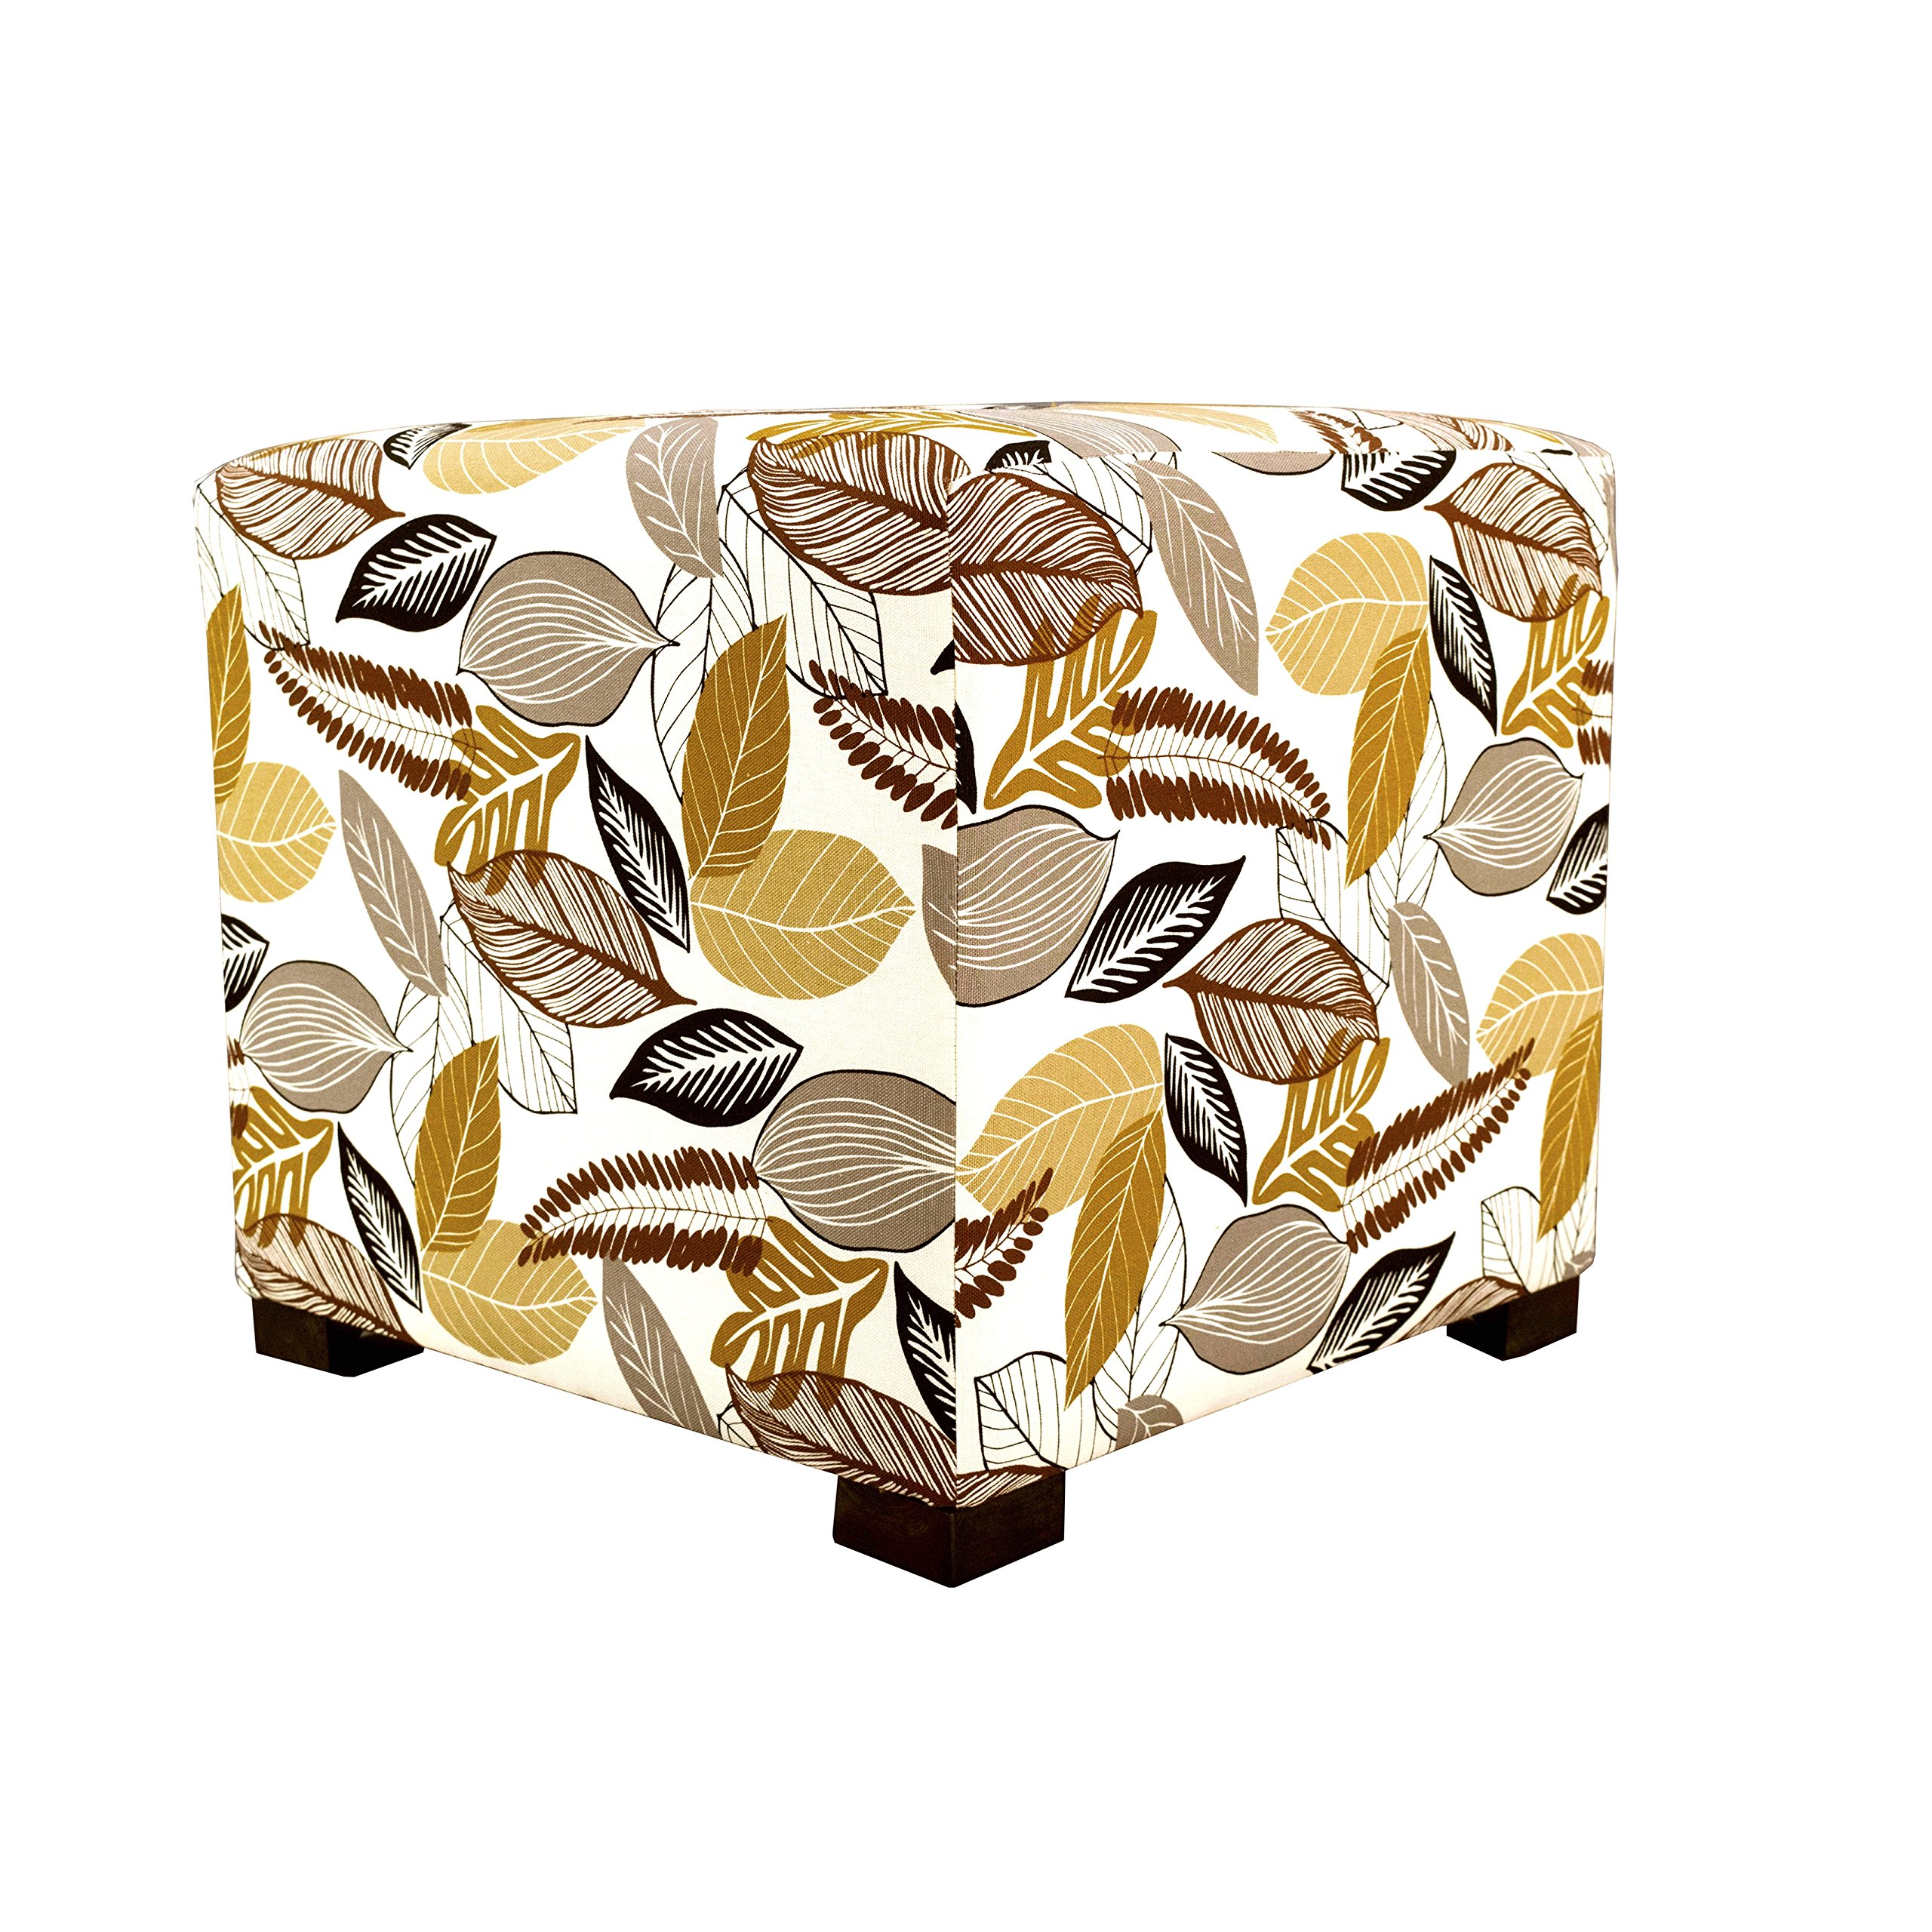 MJL Furniture Designs Merton Collection, Fabric Upholstered Modern Cube Foot Rest Ottoman with 4 Button Tufting, Floral Foliage Series, Driftwood by MJL Furniture Designs (Image #1)